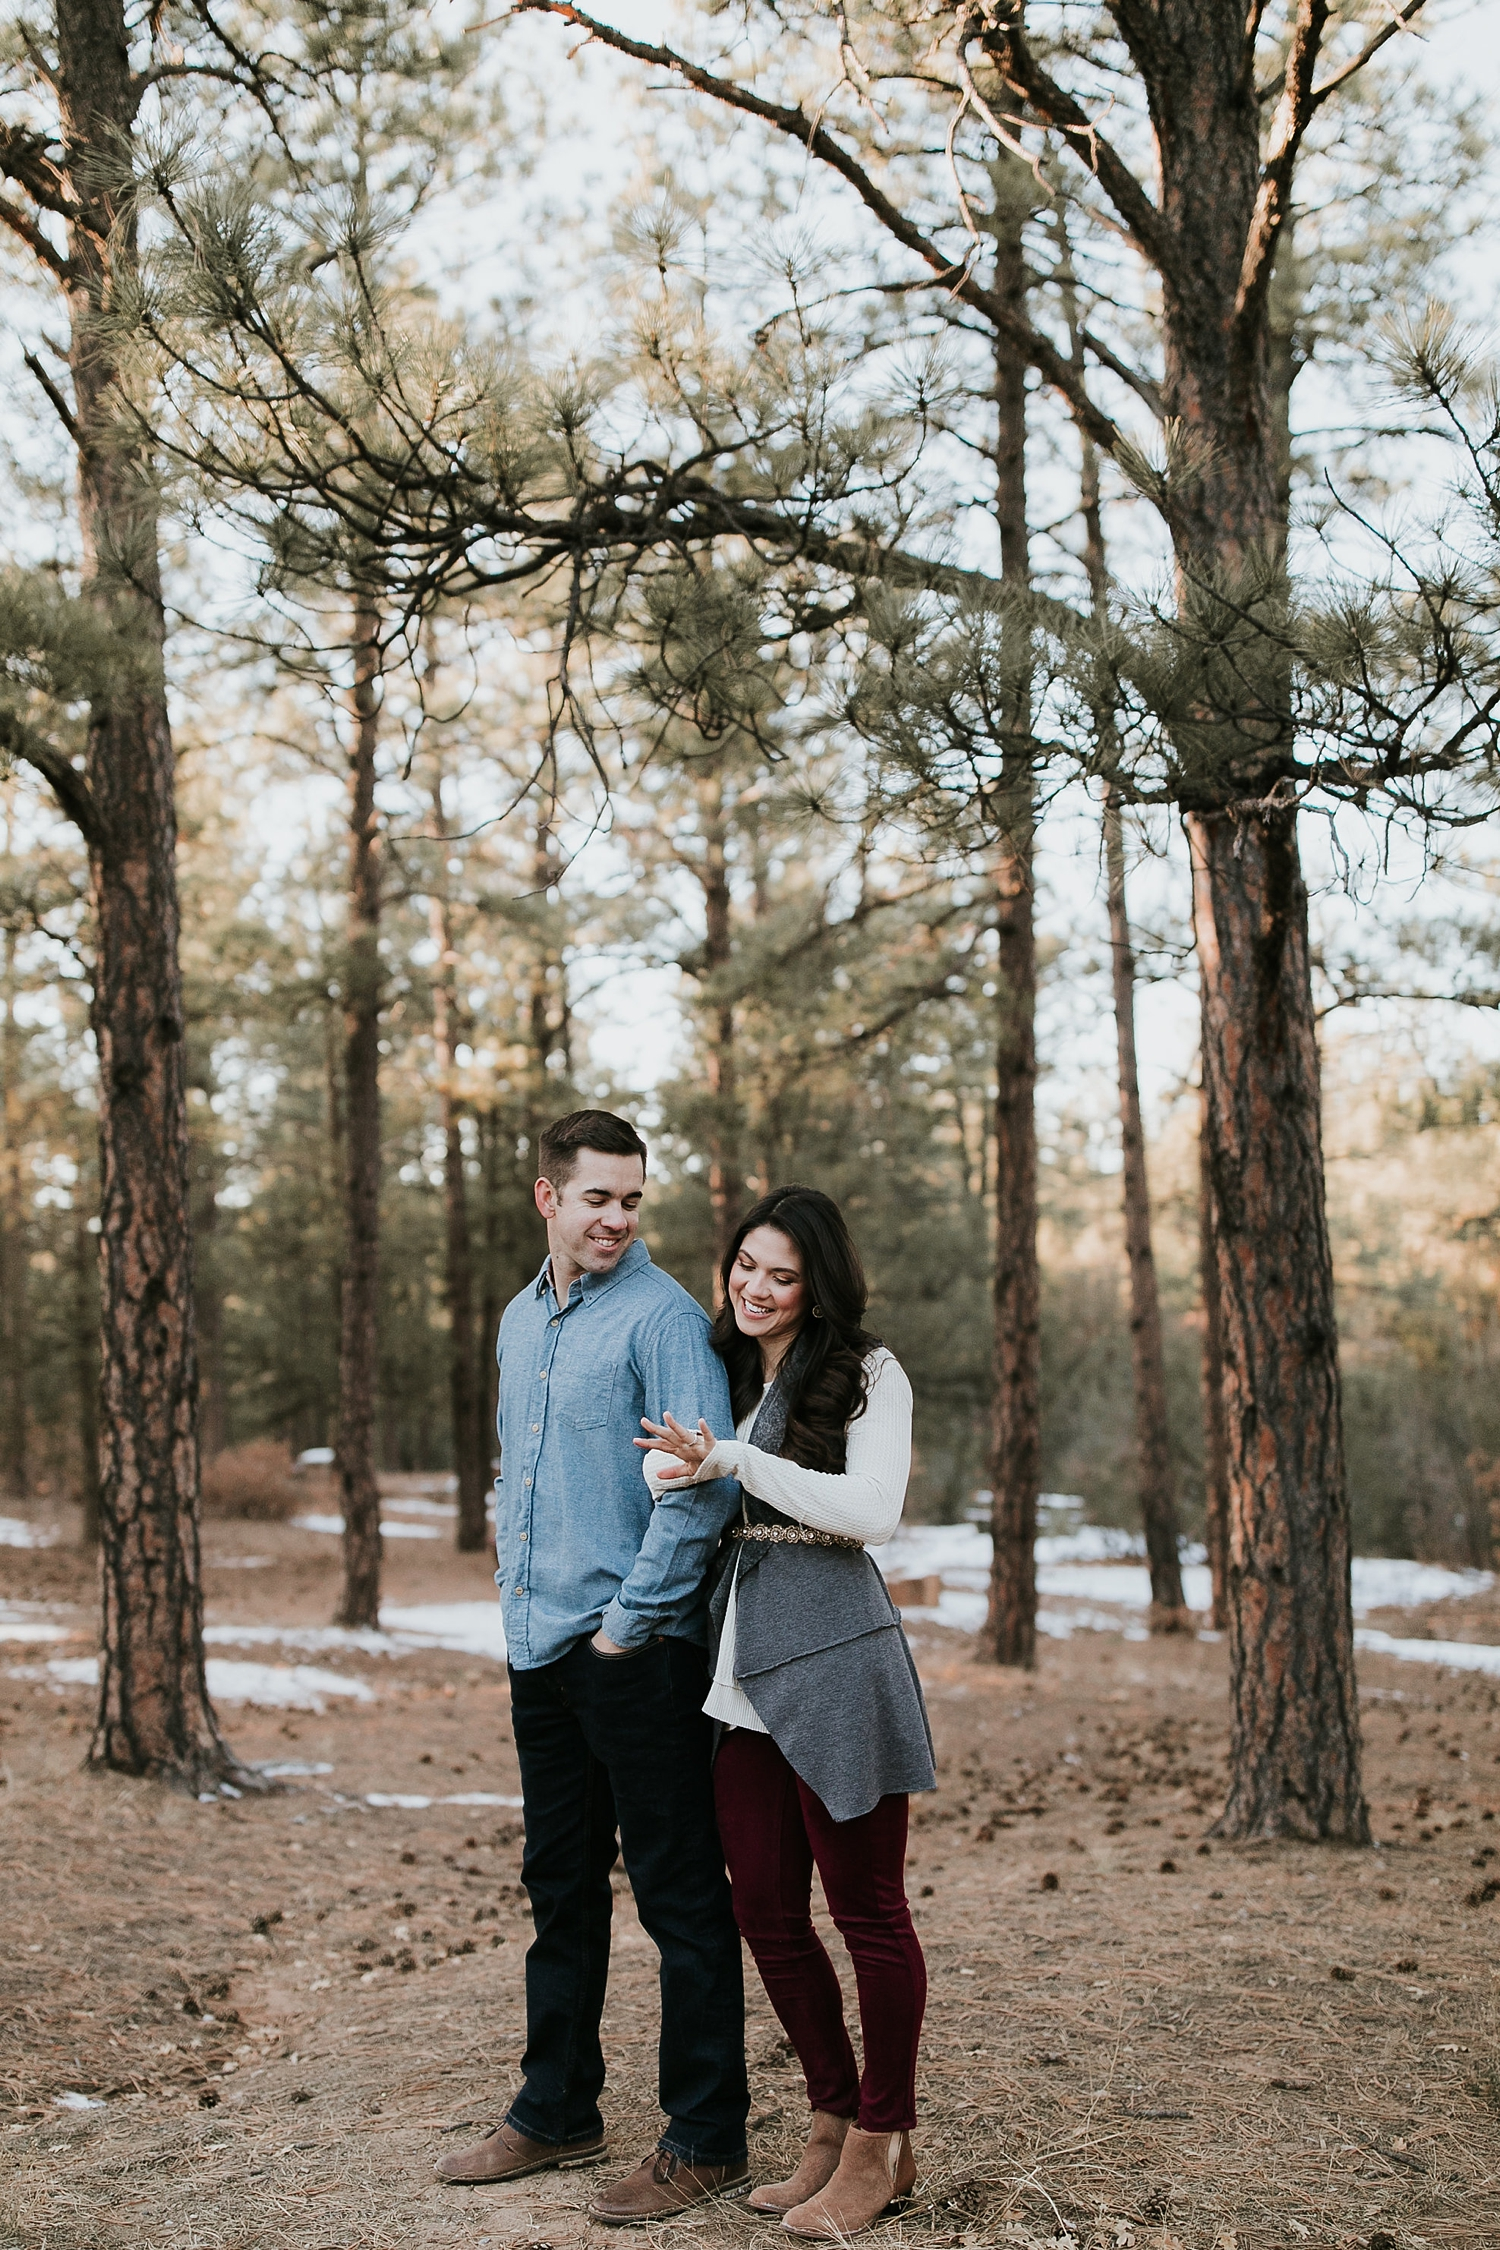 Alicia+lucia+photography+-+albuquerque+wedding+photographer+-+santa+fe+wedding+photography+-+new+mexico+wedding+photographer+-+new+mexico+engagement+-+winter+engagement+session_0029.jpg